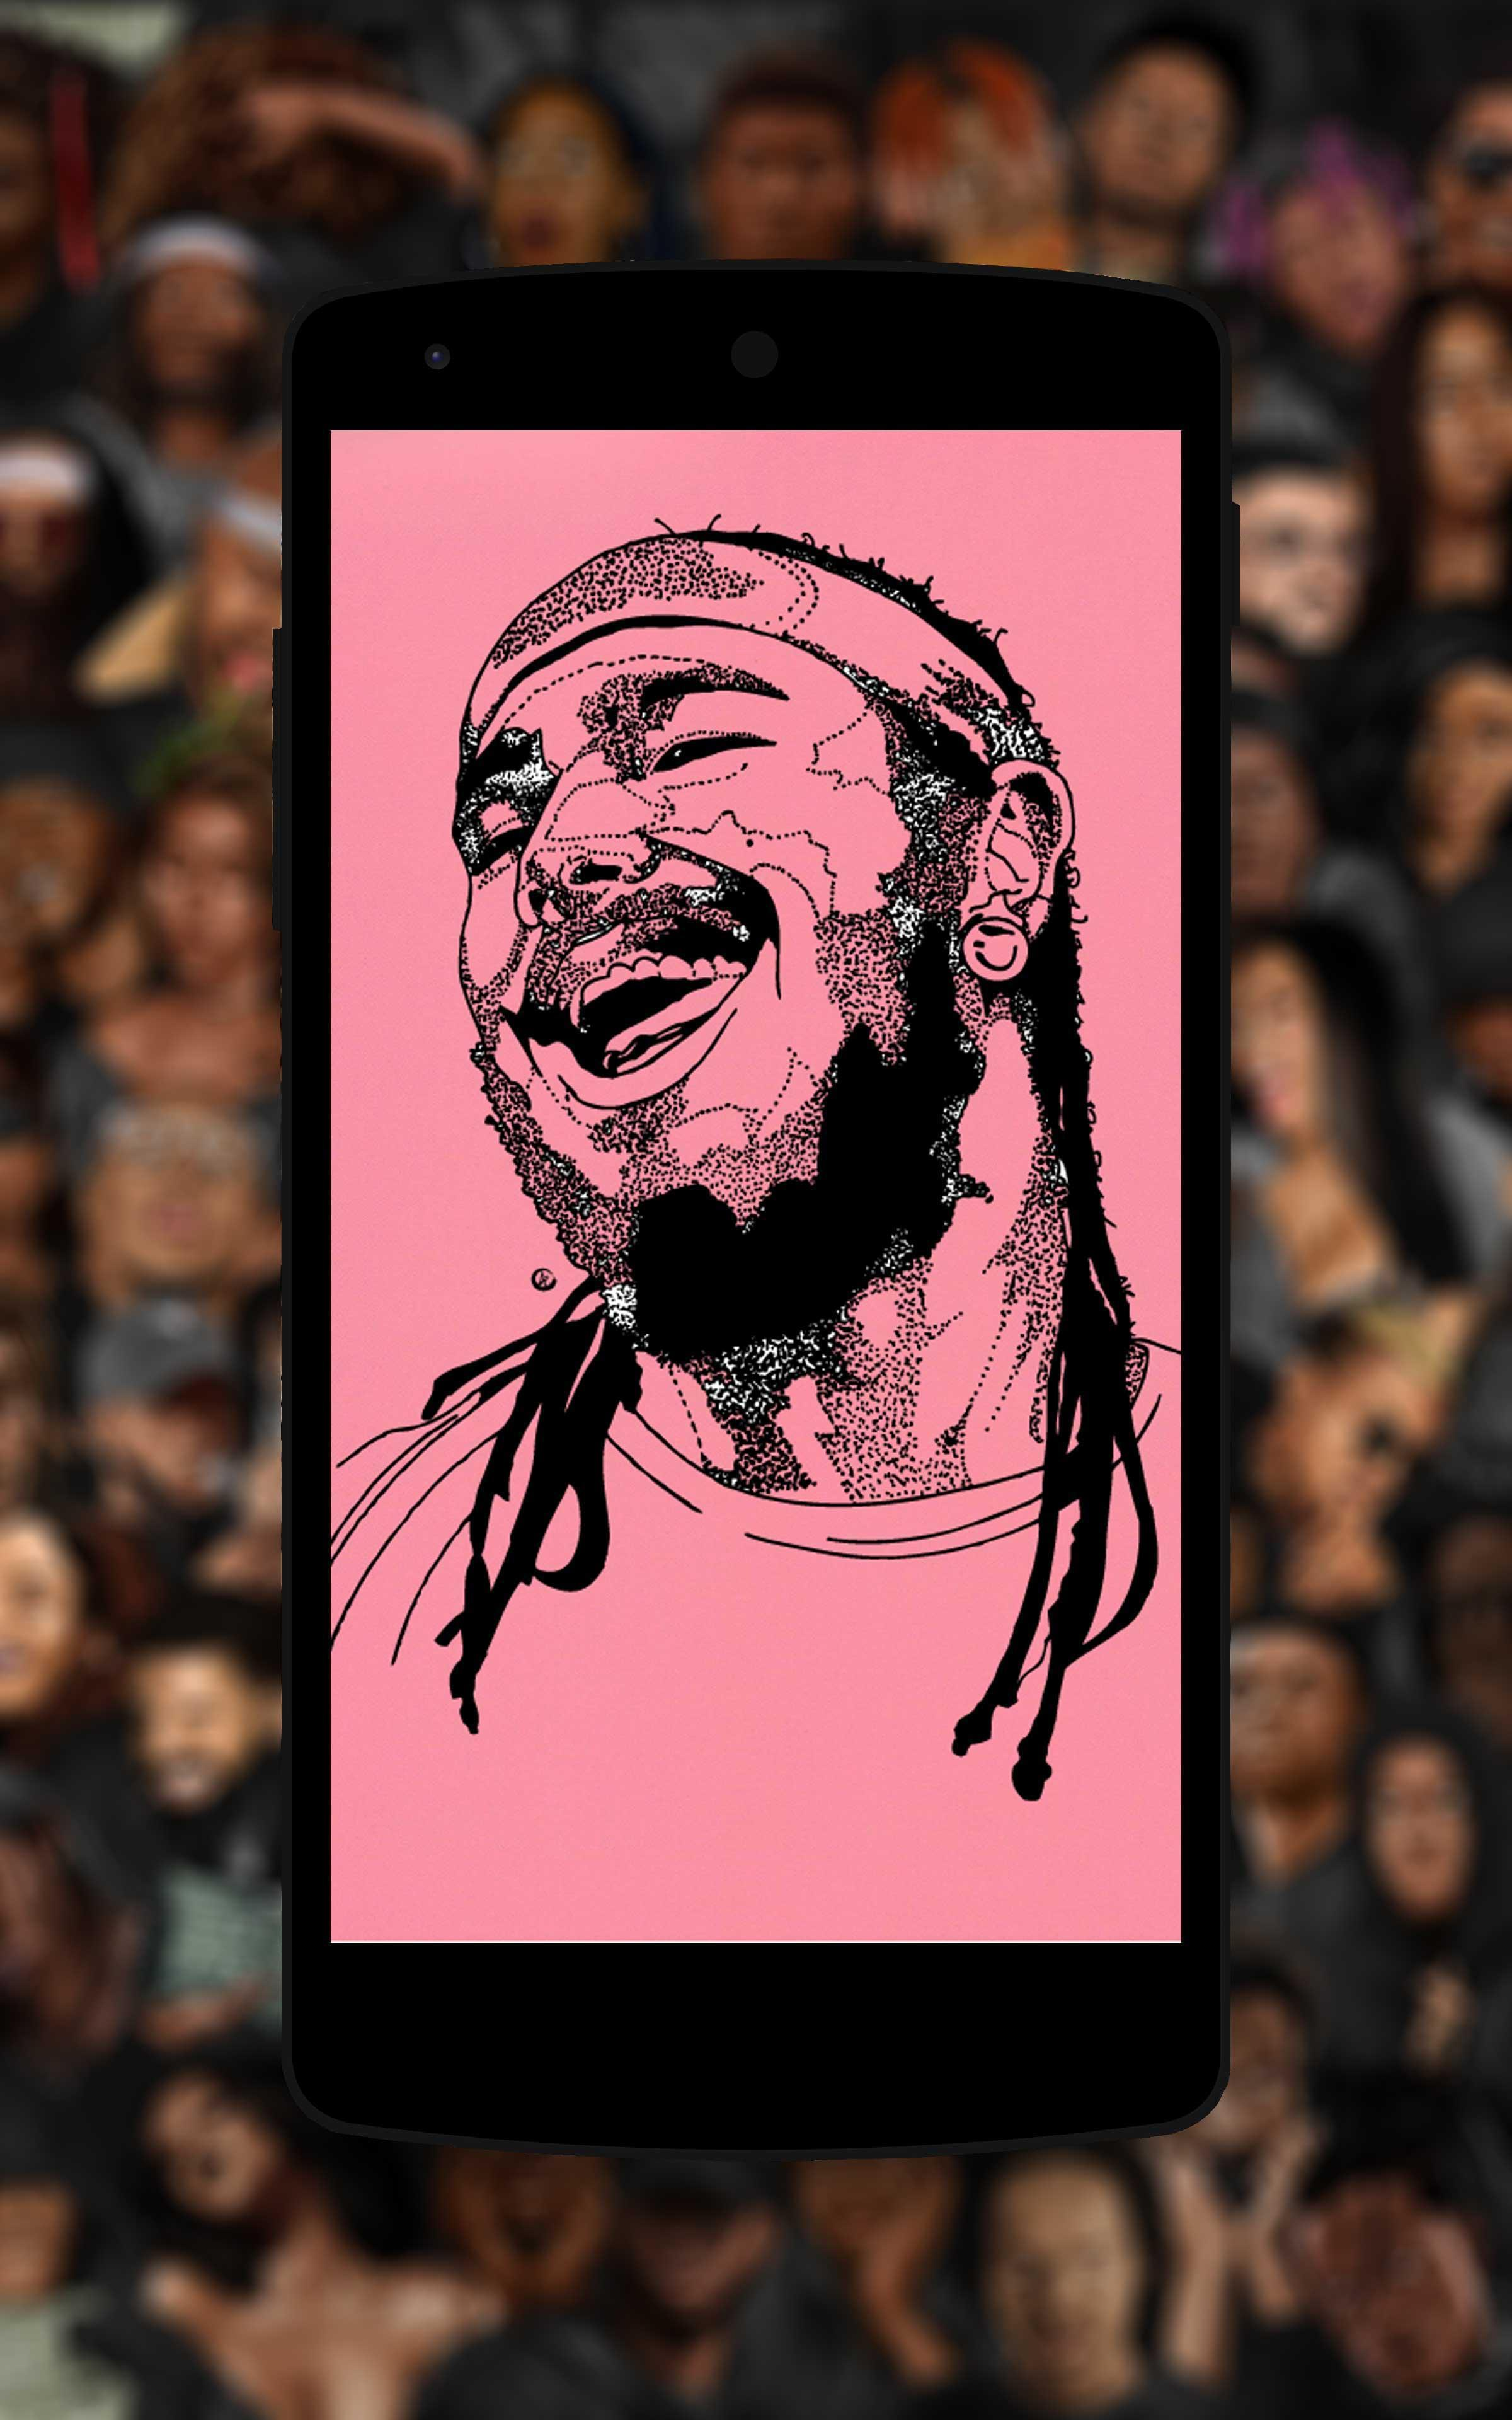 Post Malone Rockstar Wallpaper for Android - APK Download